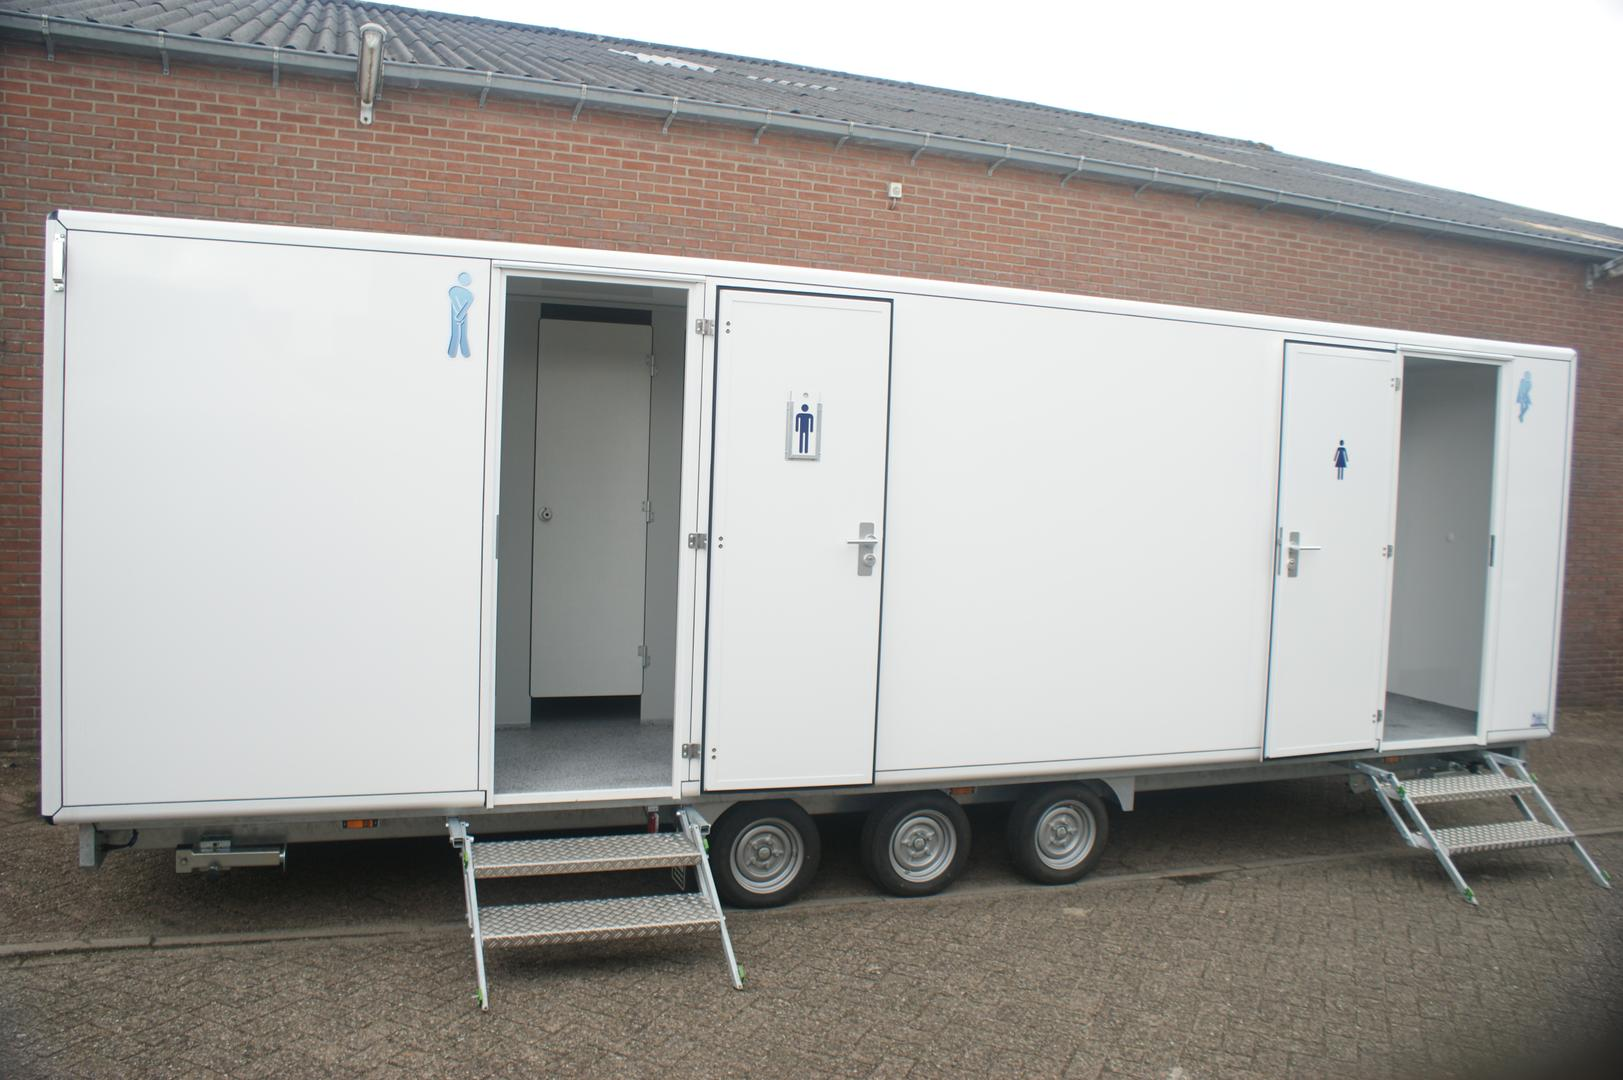 Dames toiletwagen XL